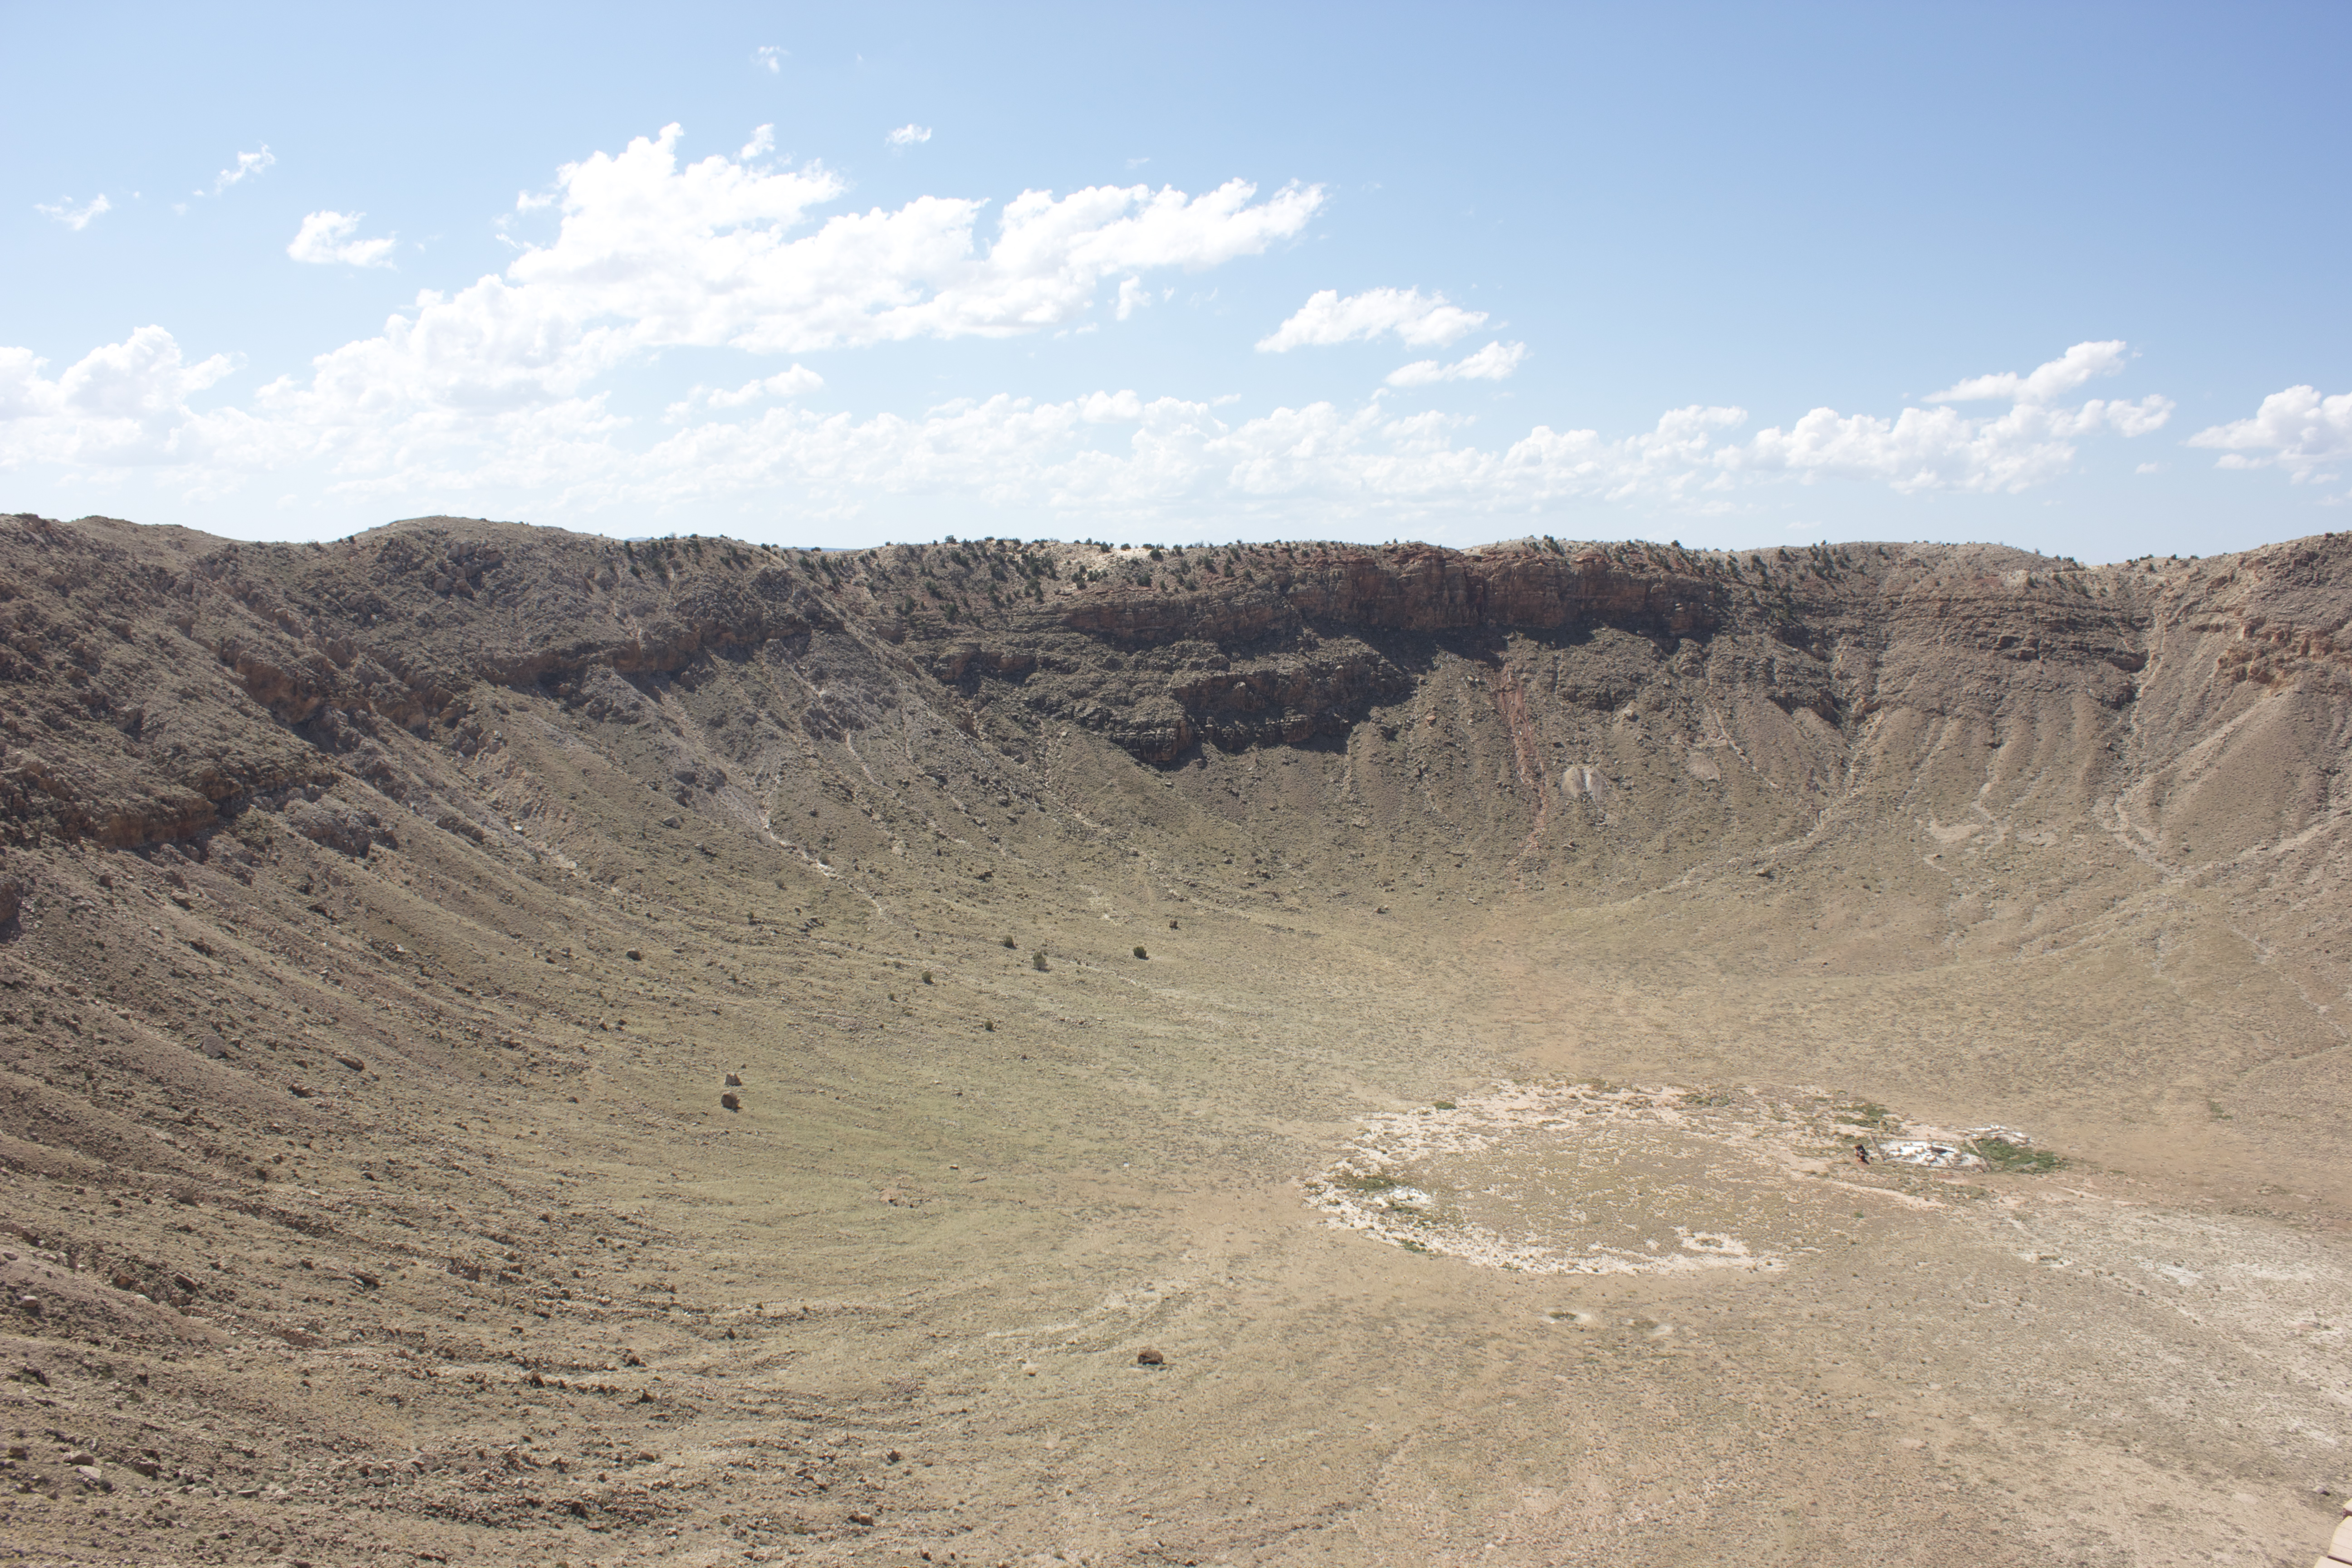 Meteor Crater, a meteorite impact crater near Winslow Arizona (and the largest in the United States).